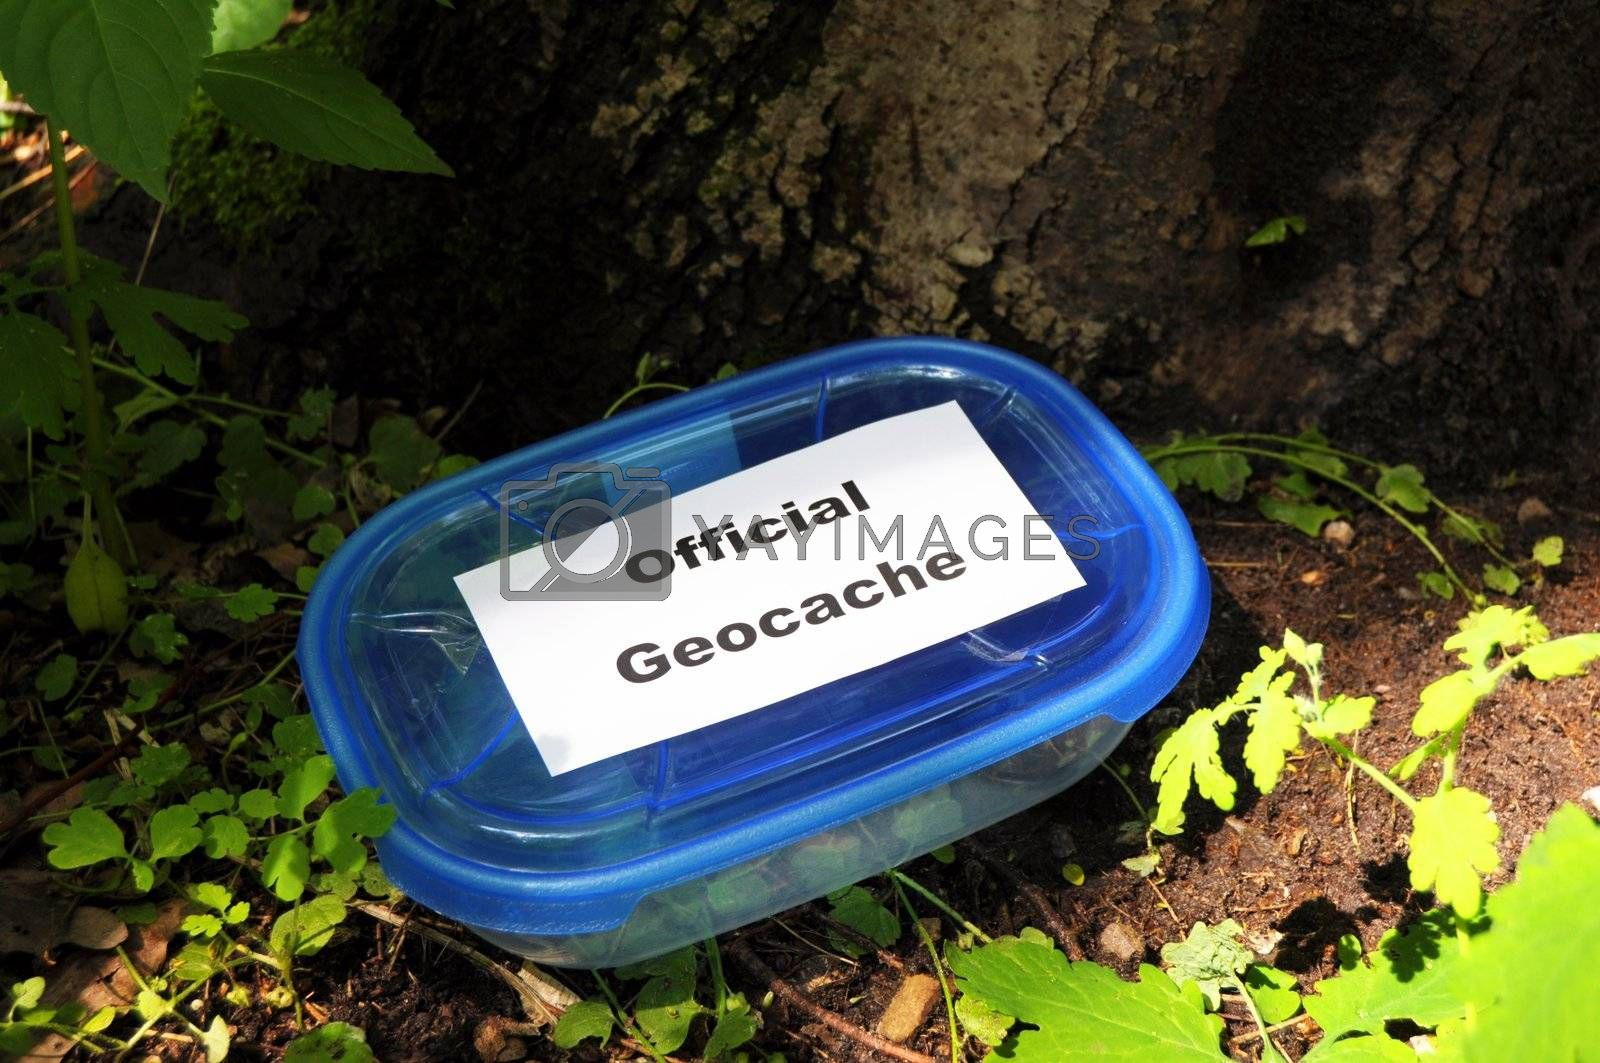 official blue geocache box in nature or forest